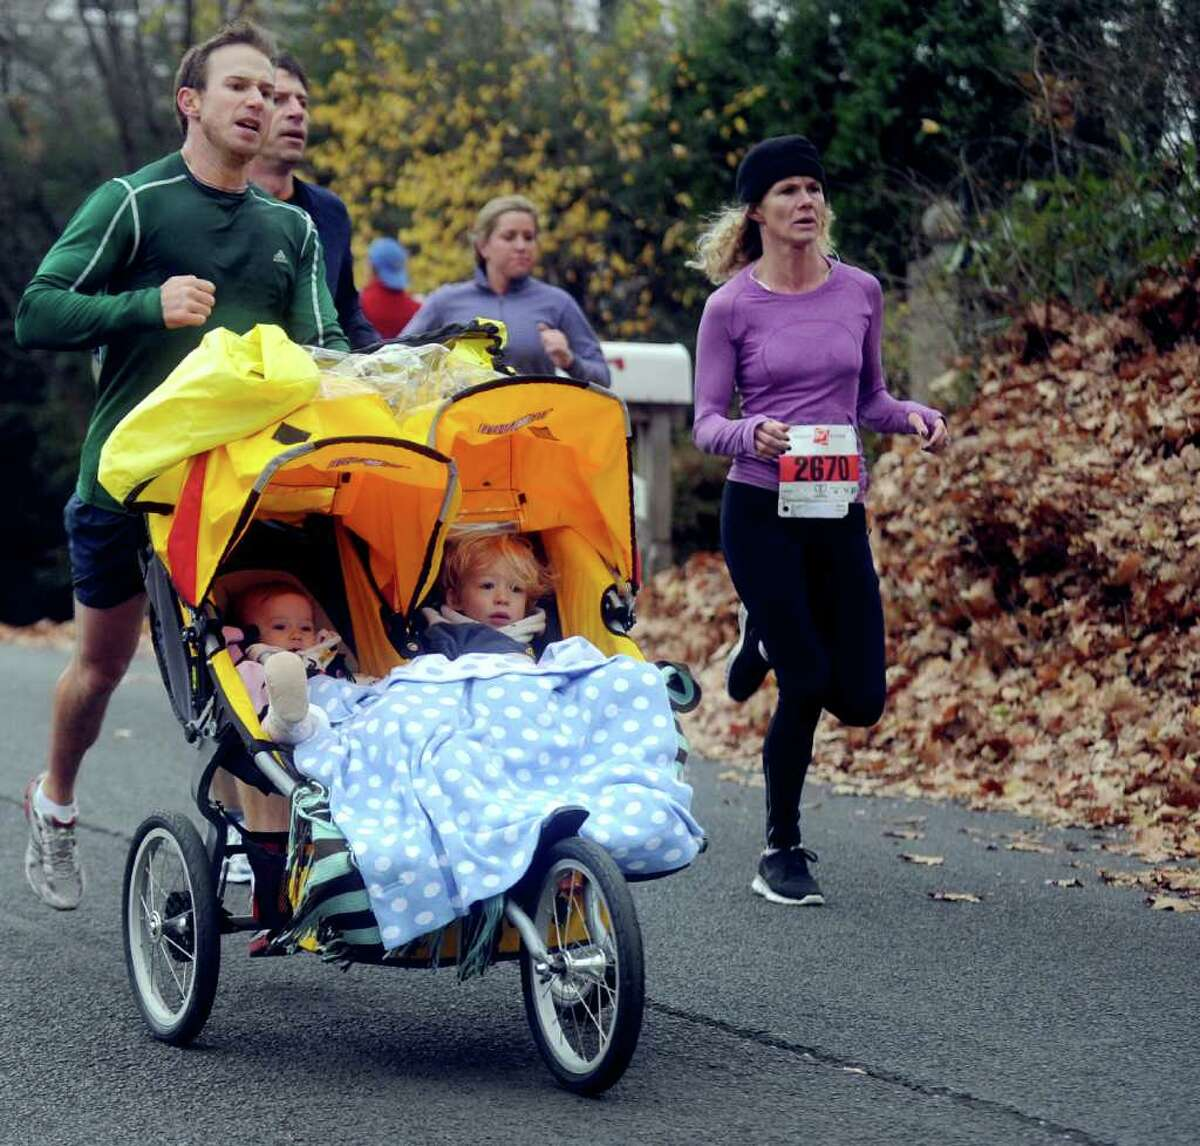 Runners participate in the 33rd Pequot Running Club Thanksgiving Day five-mile race in Southport on November 25, 2010.